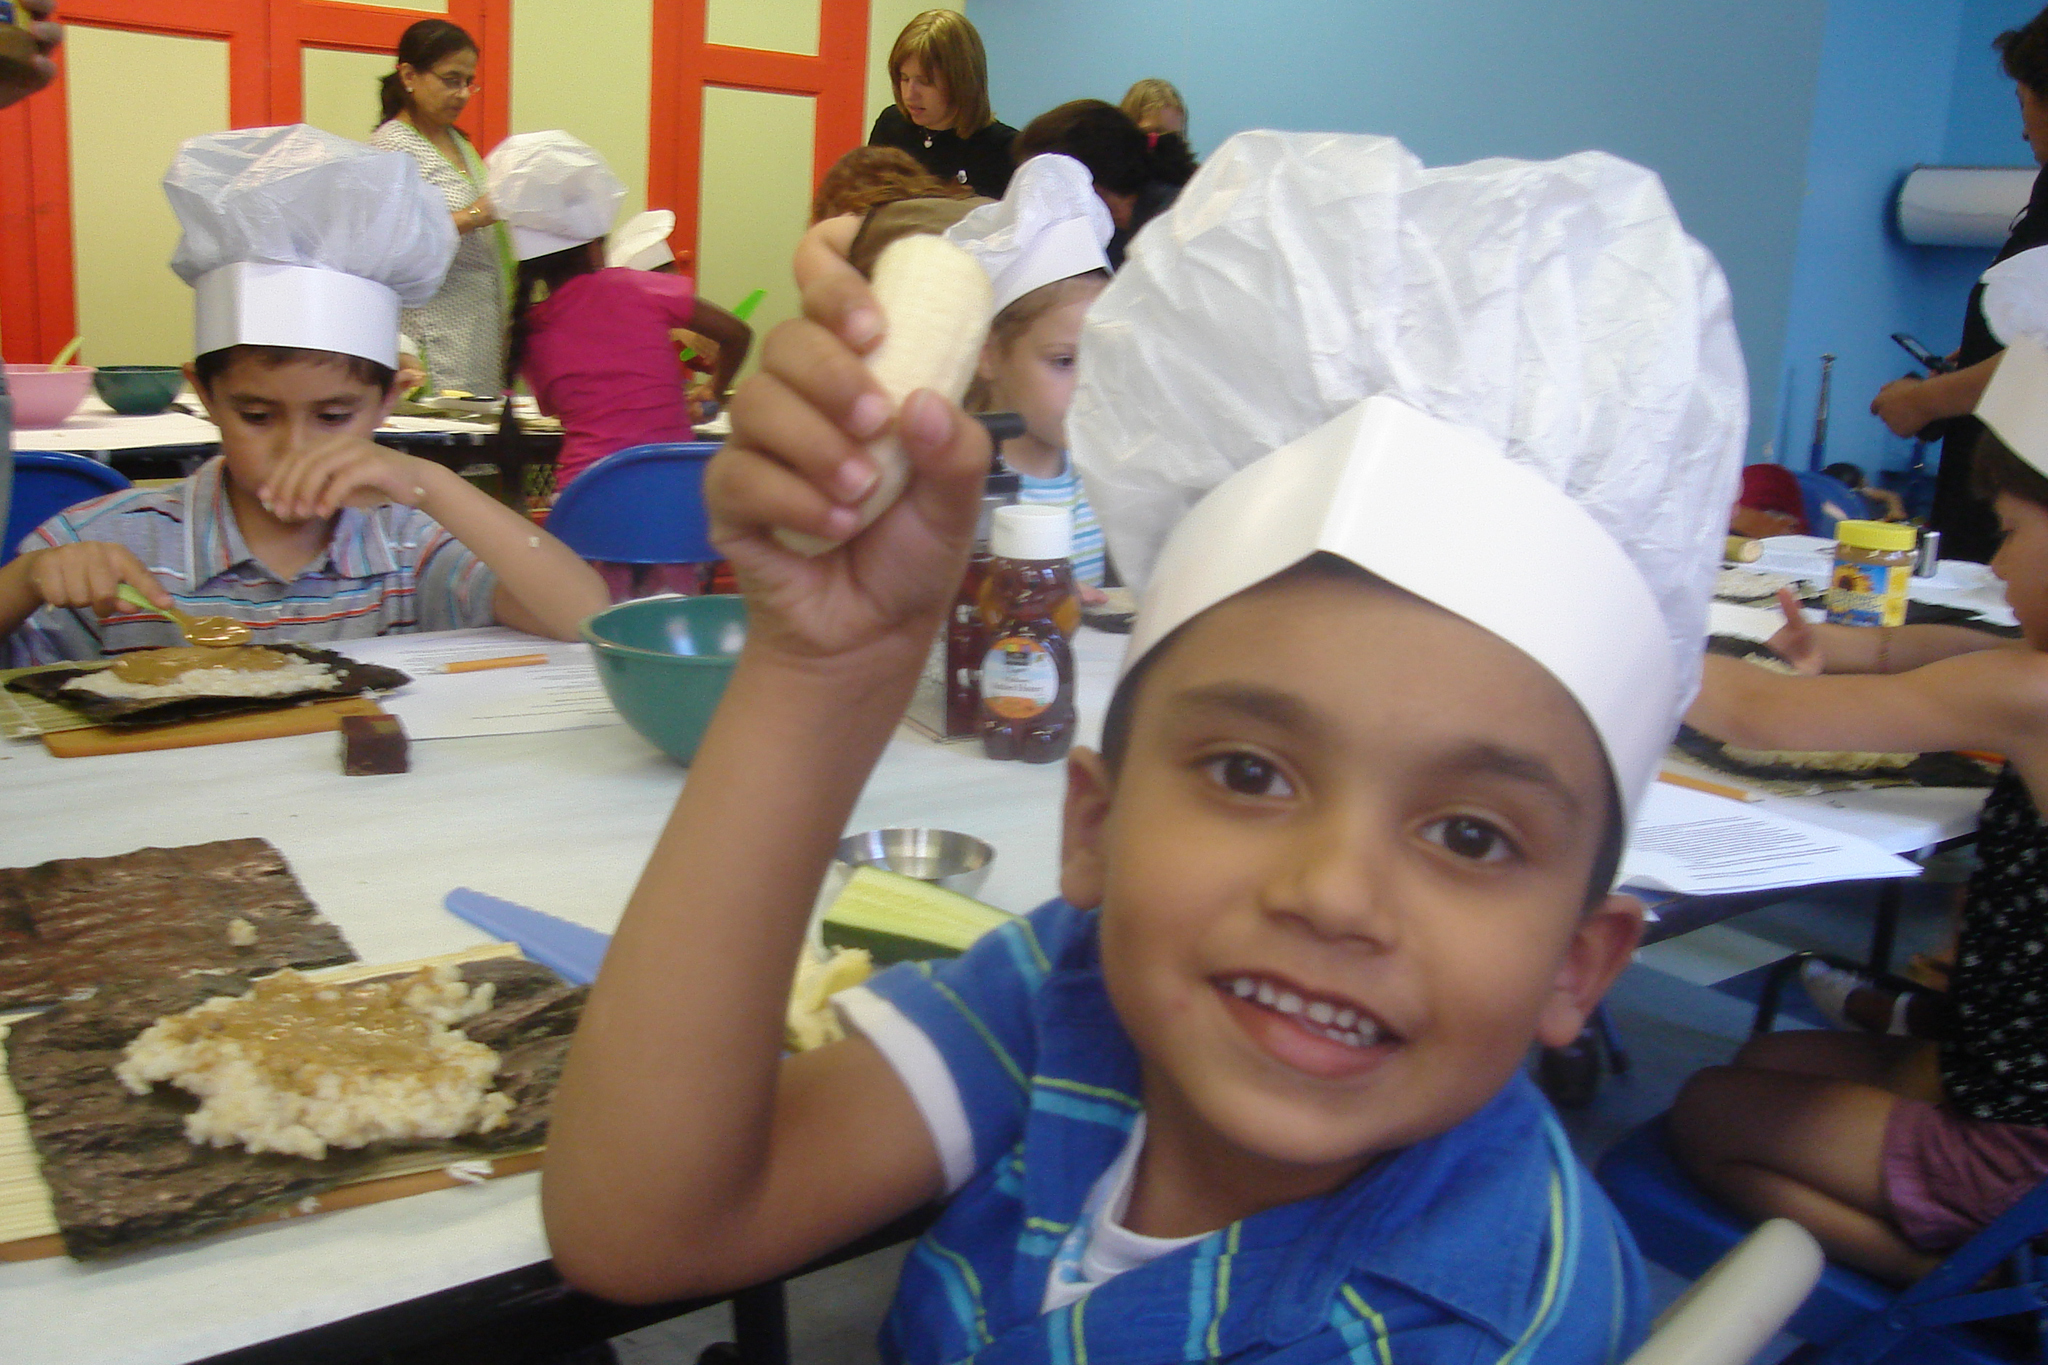 Tackle back-to-school crafts and cooking demos at CMOM